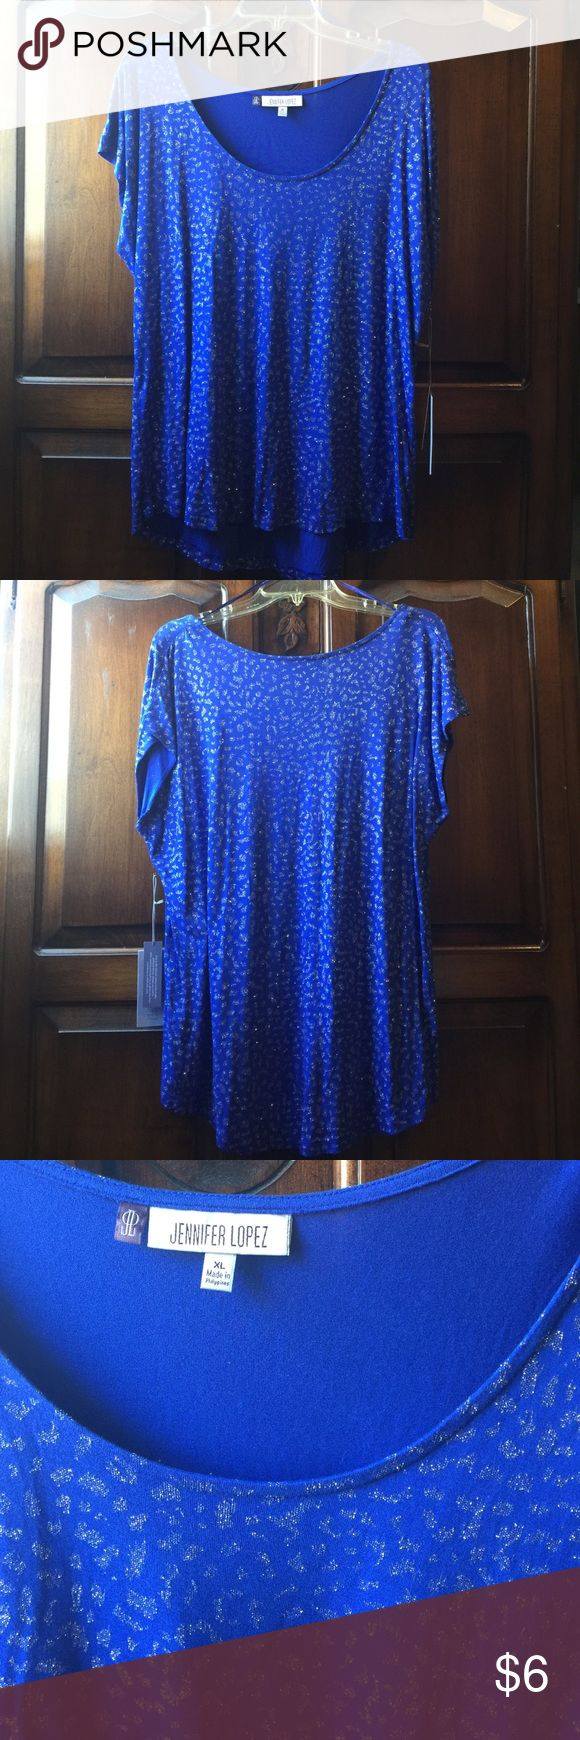 Blue and silver Blouse This is a blue with silver designs Blouse from the Jennifer Lopez line from Khol's. It's brand new with tags in great condition! Jennifer Lopez Tops Blouses